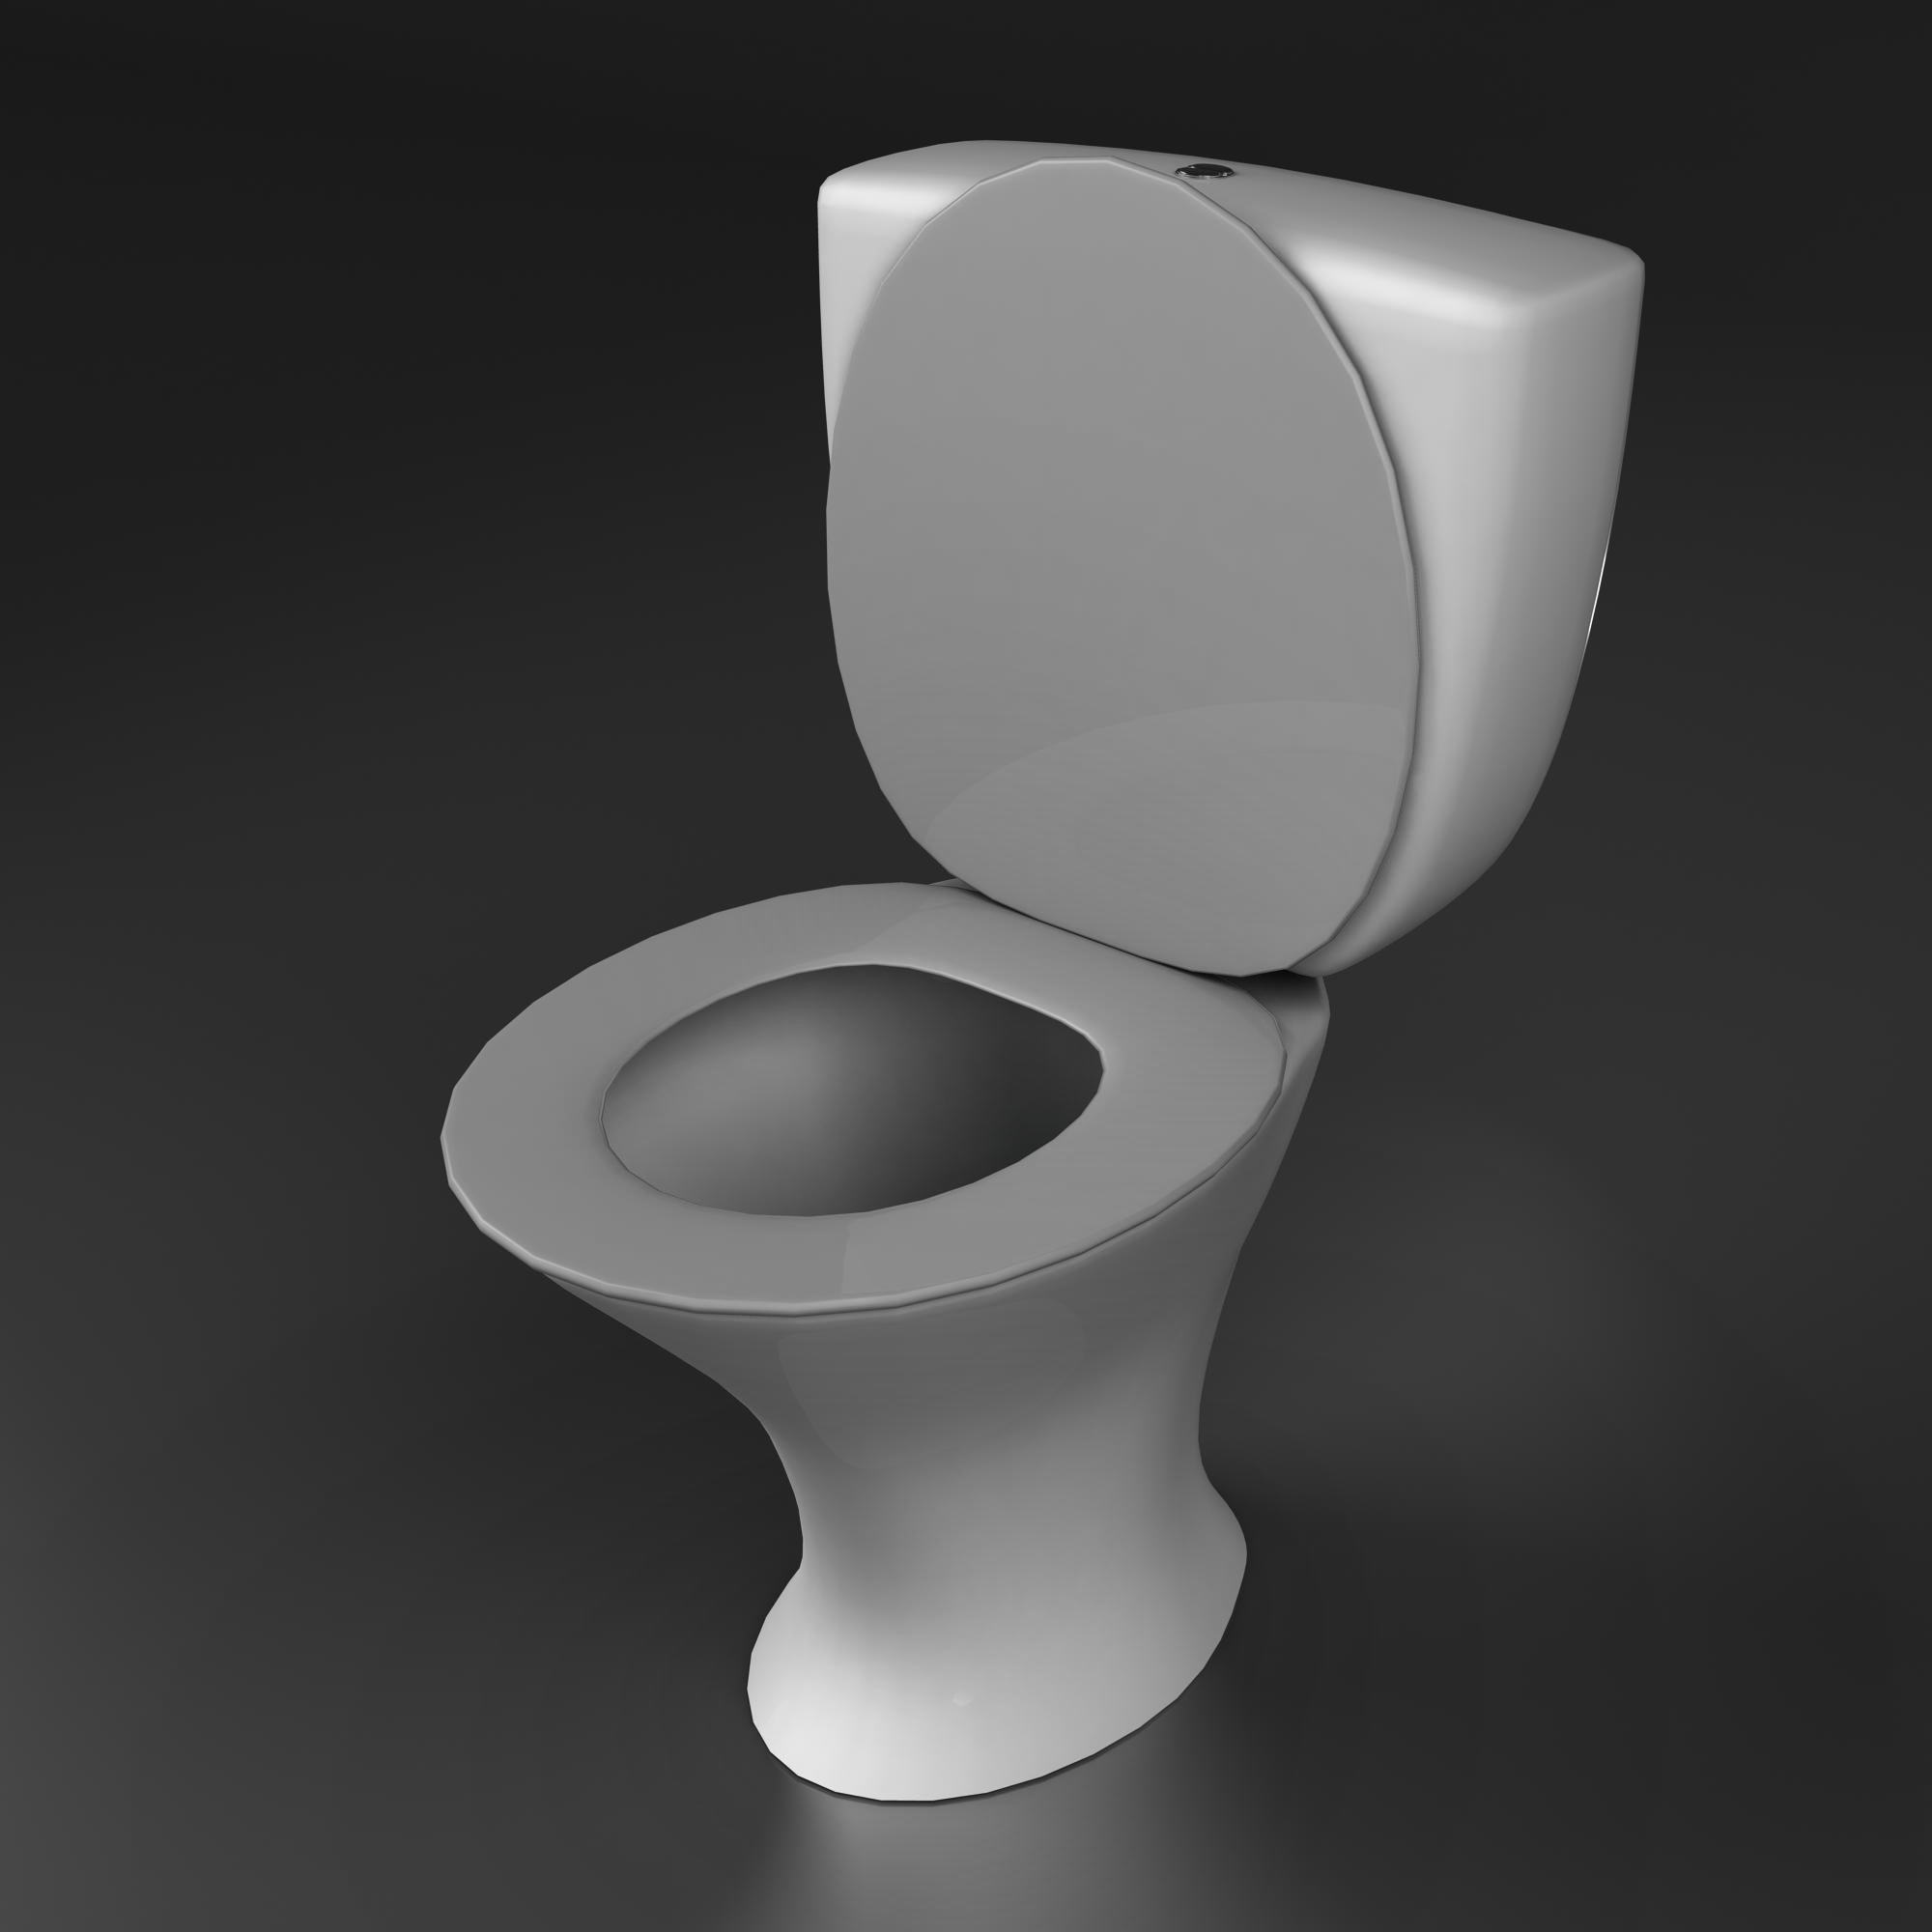 toilet 2 3d model 3ds max fbx ma mb obj 158008